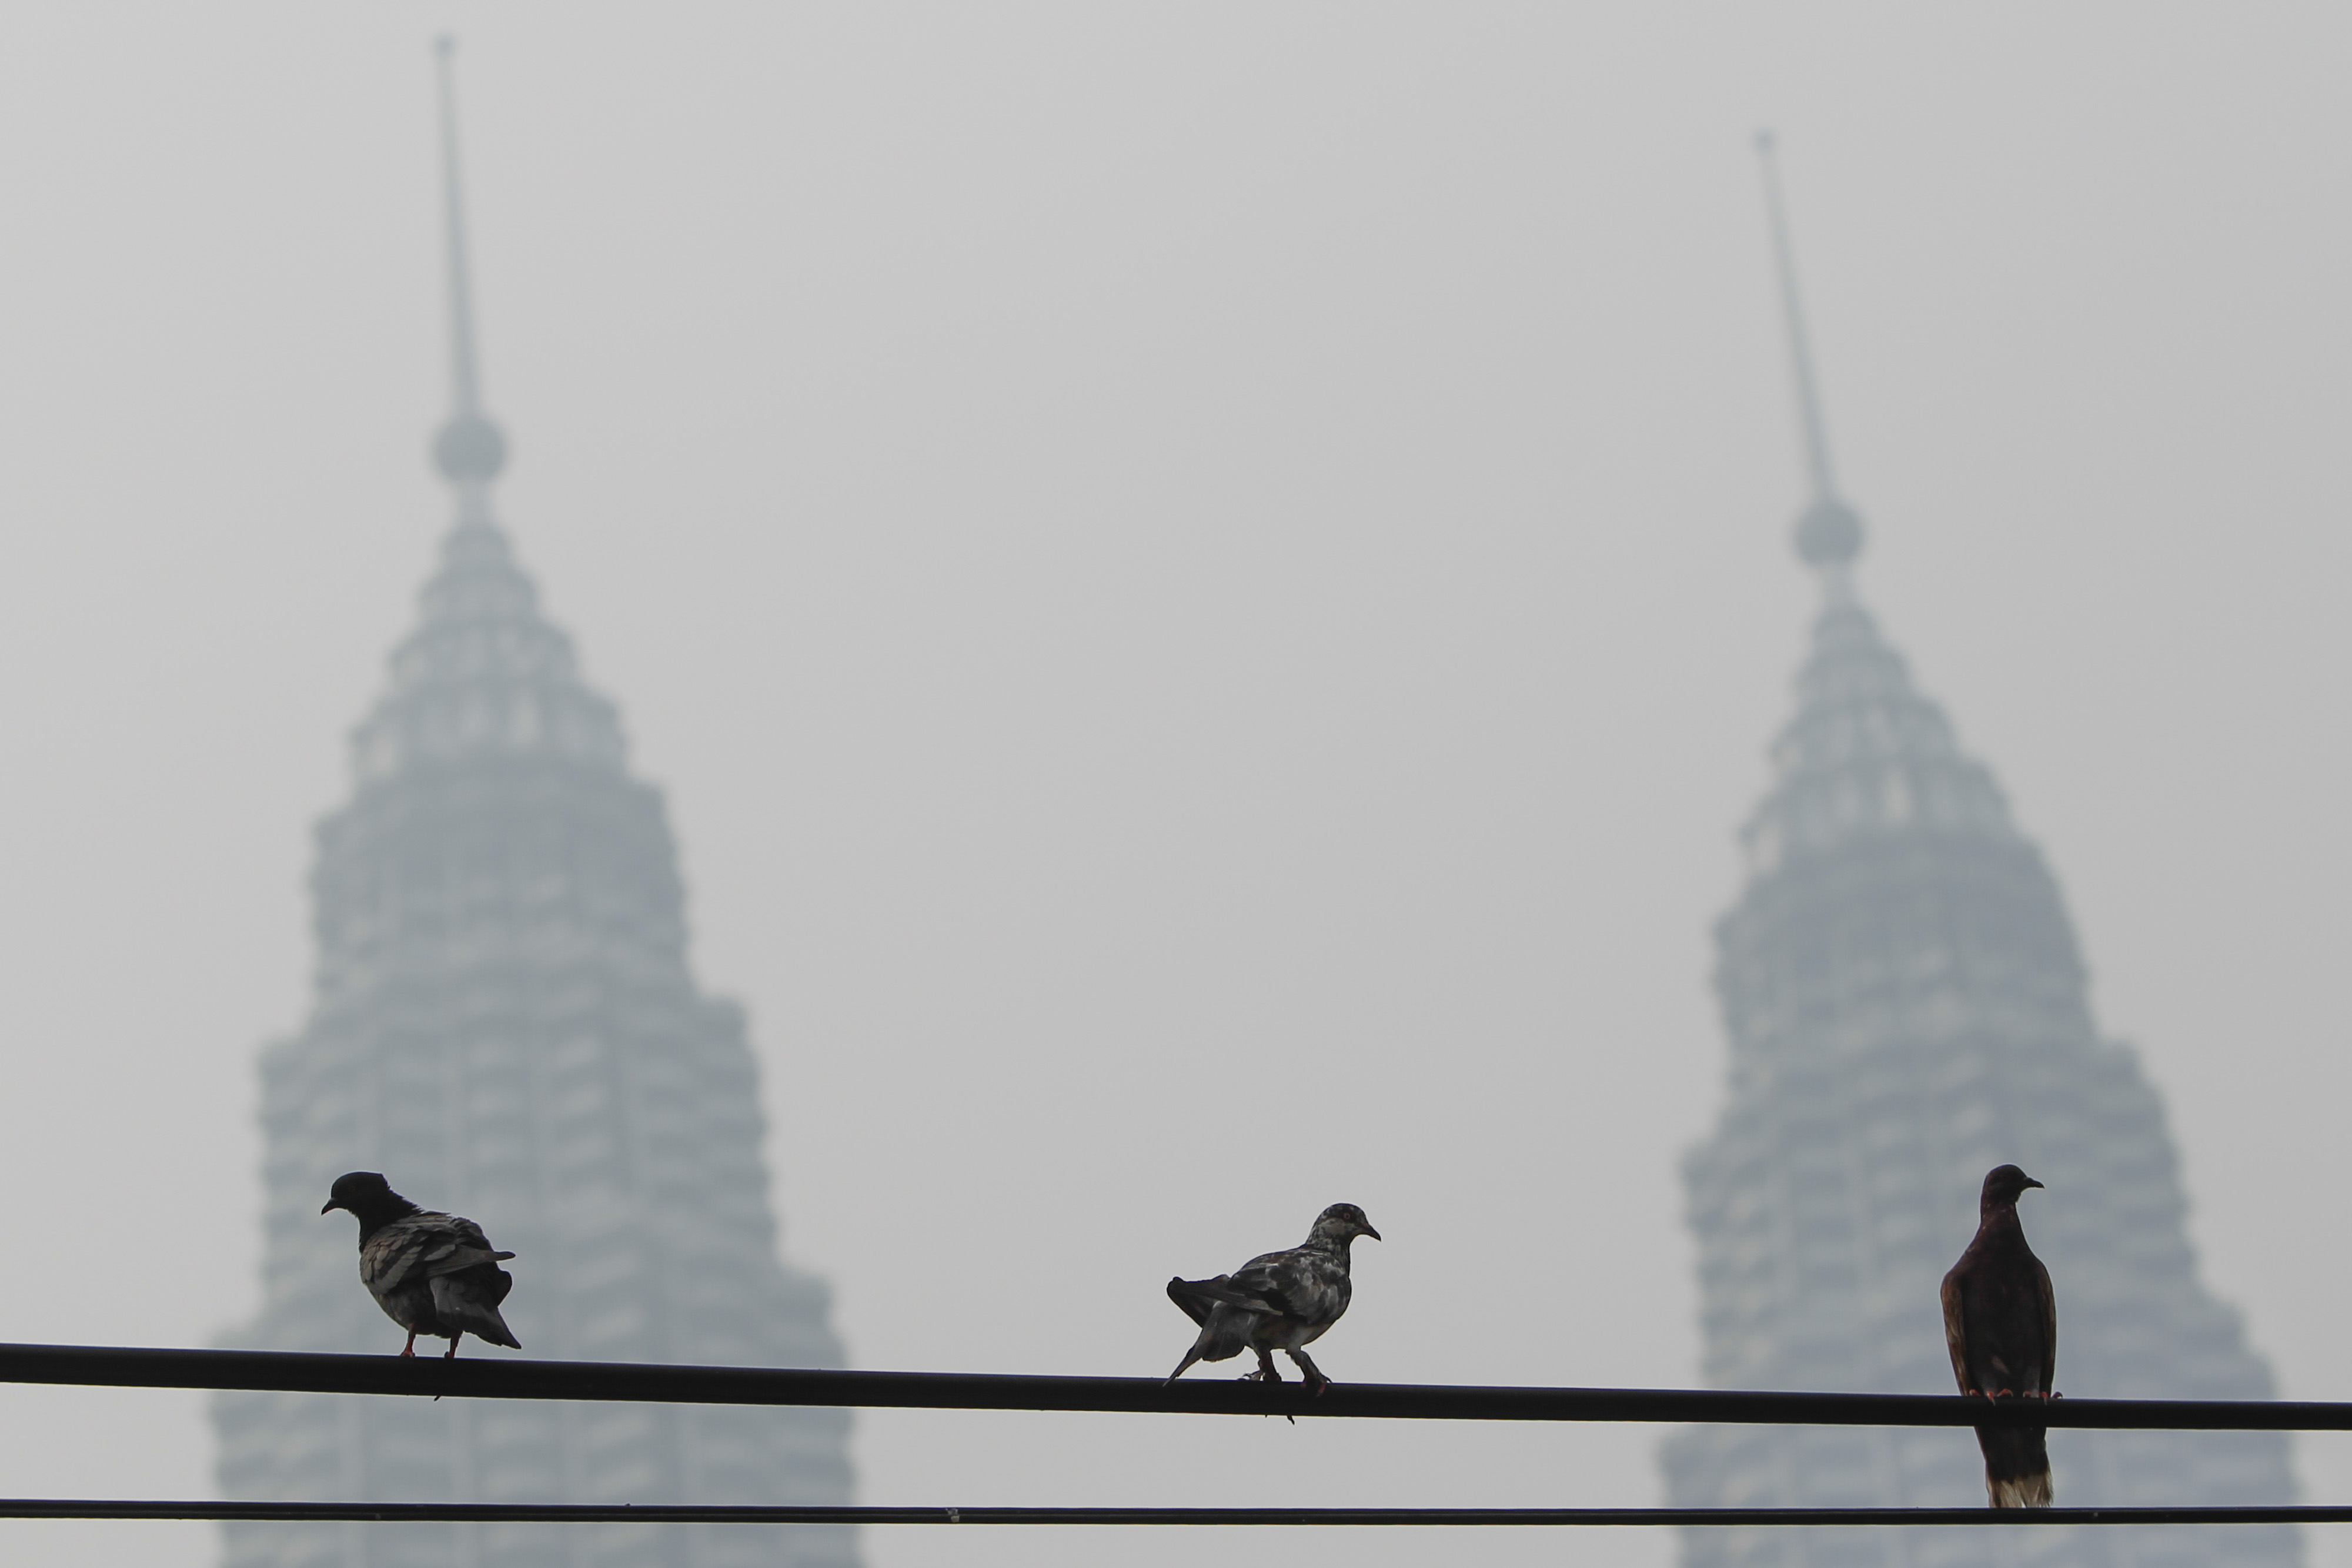 Pigeons perch on a power cable against Malaysia's landmark building, Petronas Twin Towers, shrouded with haze in Kuala Lumpur, on Oct. 4, 2015. The haze is caused by the burning of forests in Indonesia's Sumatra and Borneo islands